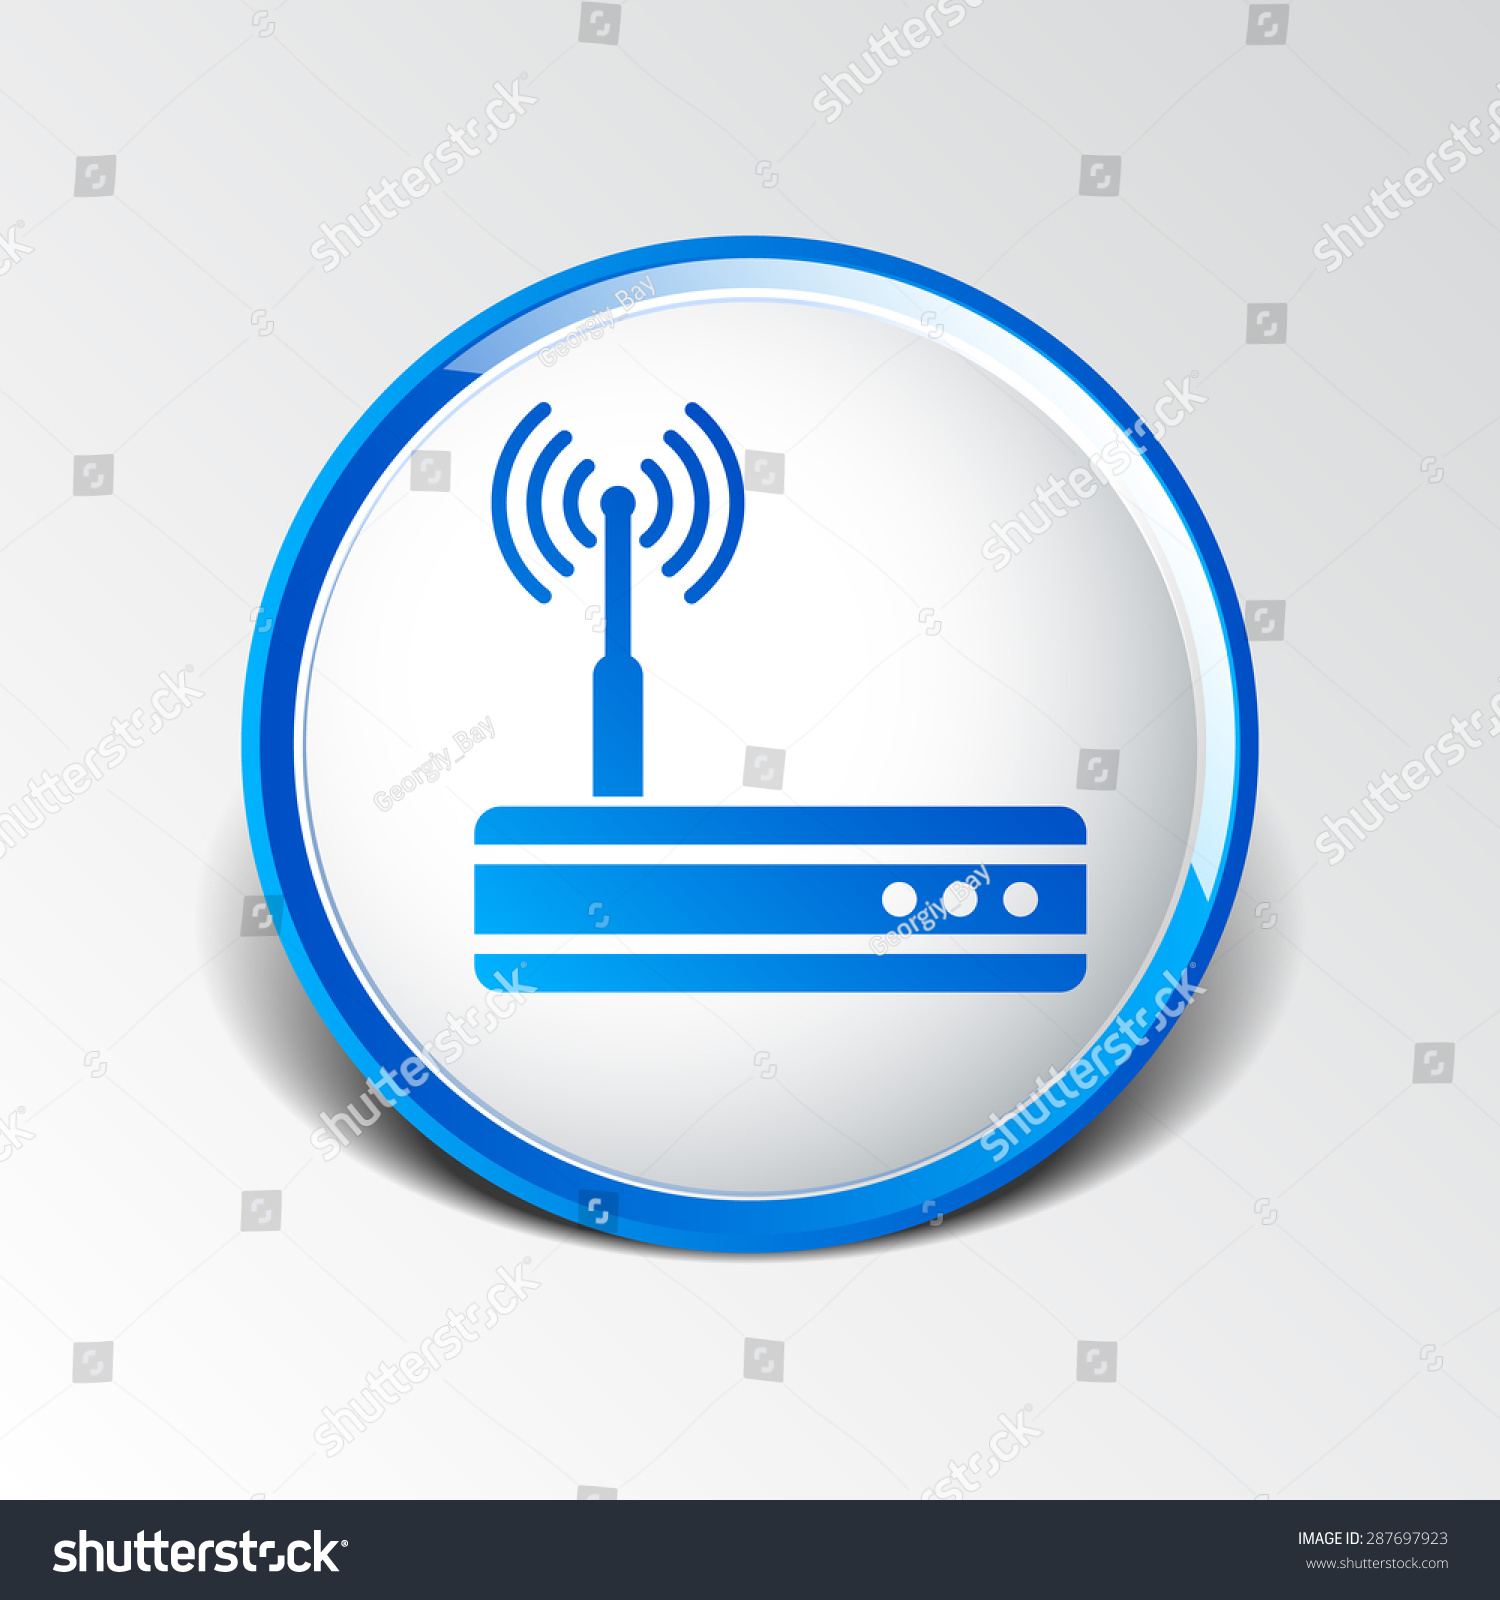 Wiring Diagram Modem Library Centurylink Dsl Vector Wireless Router Icon Wifi Adsl Stock Royalty Free Rh Shutterstock Com Null Cable Another Diagrams